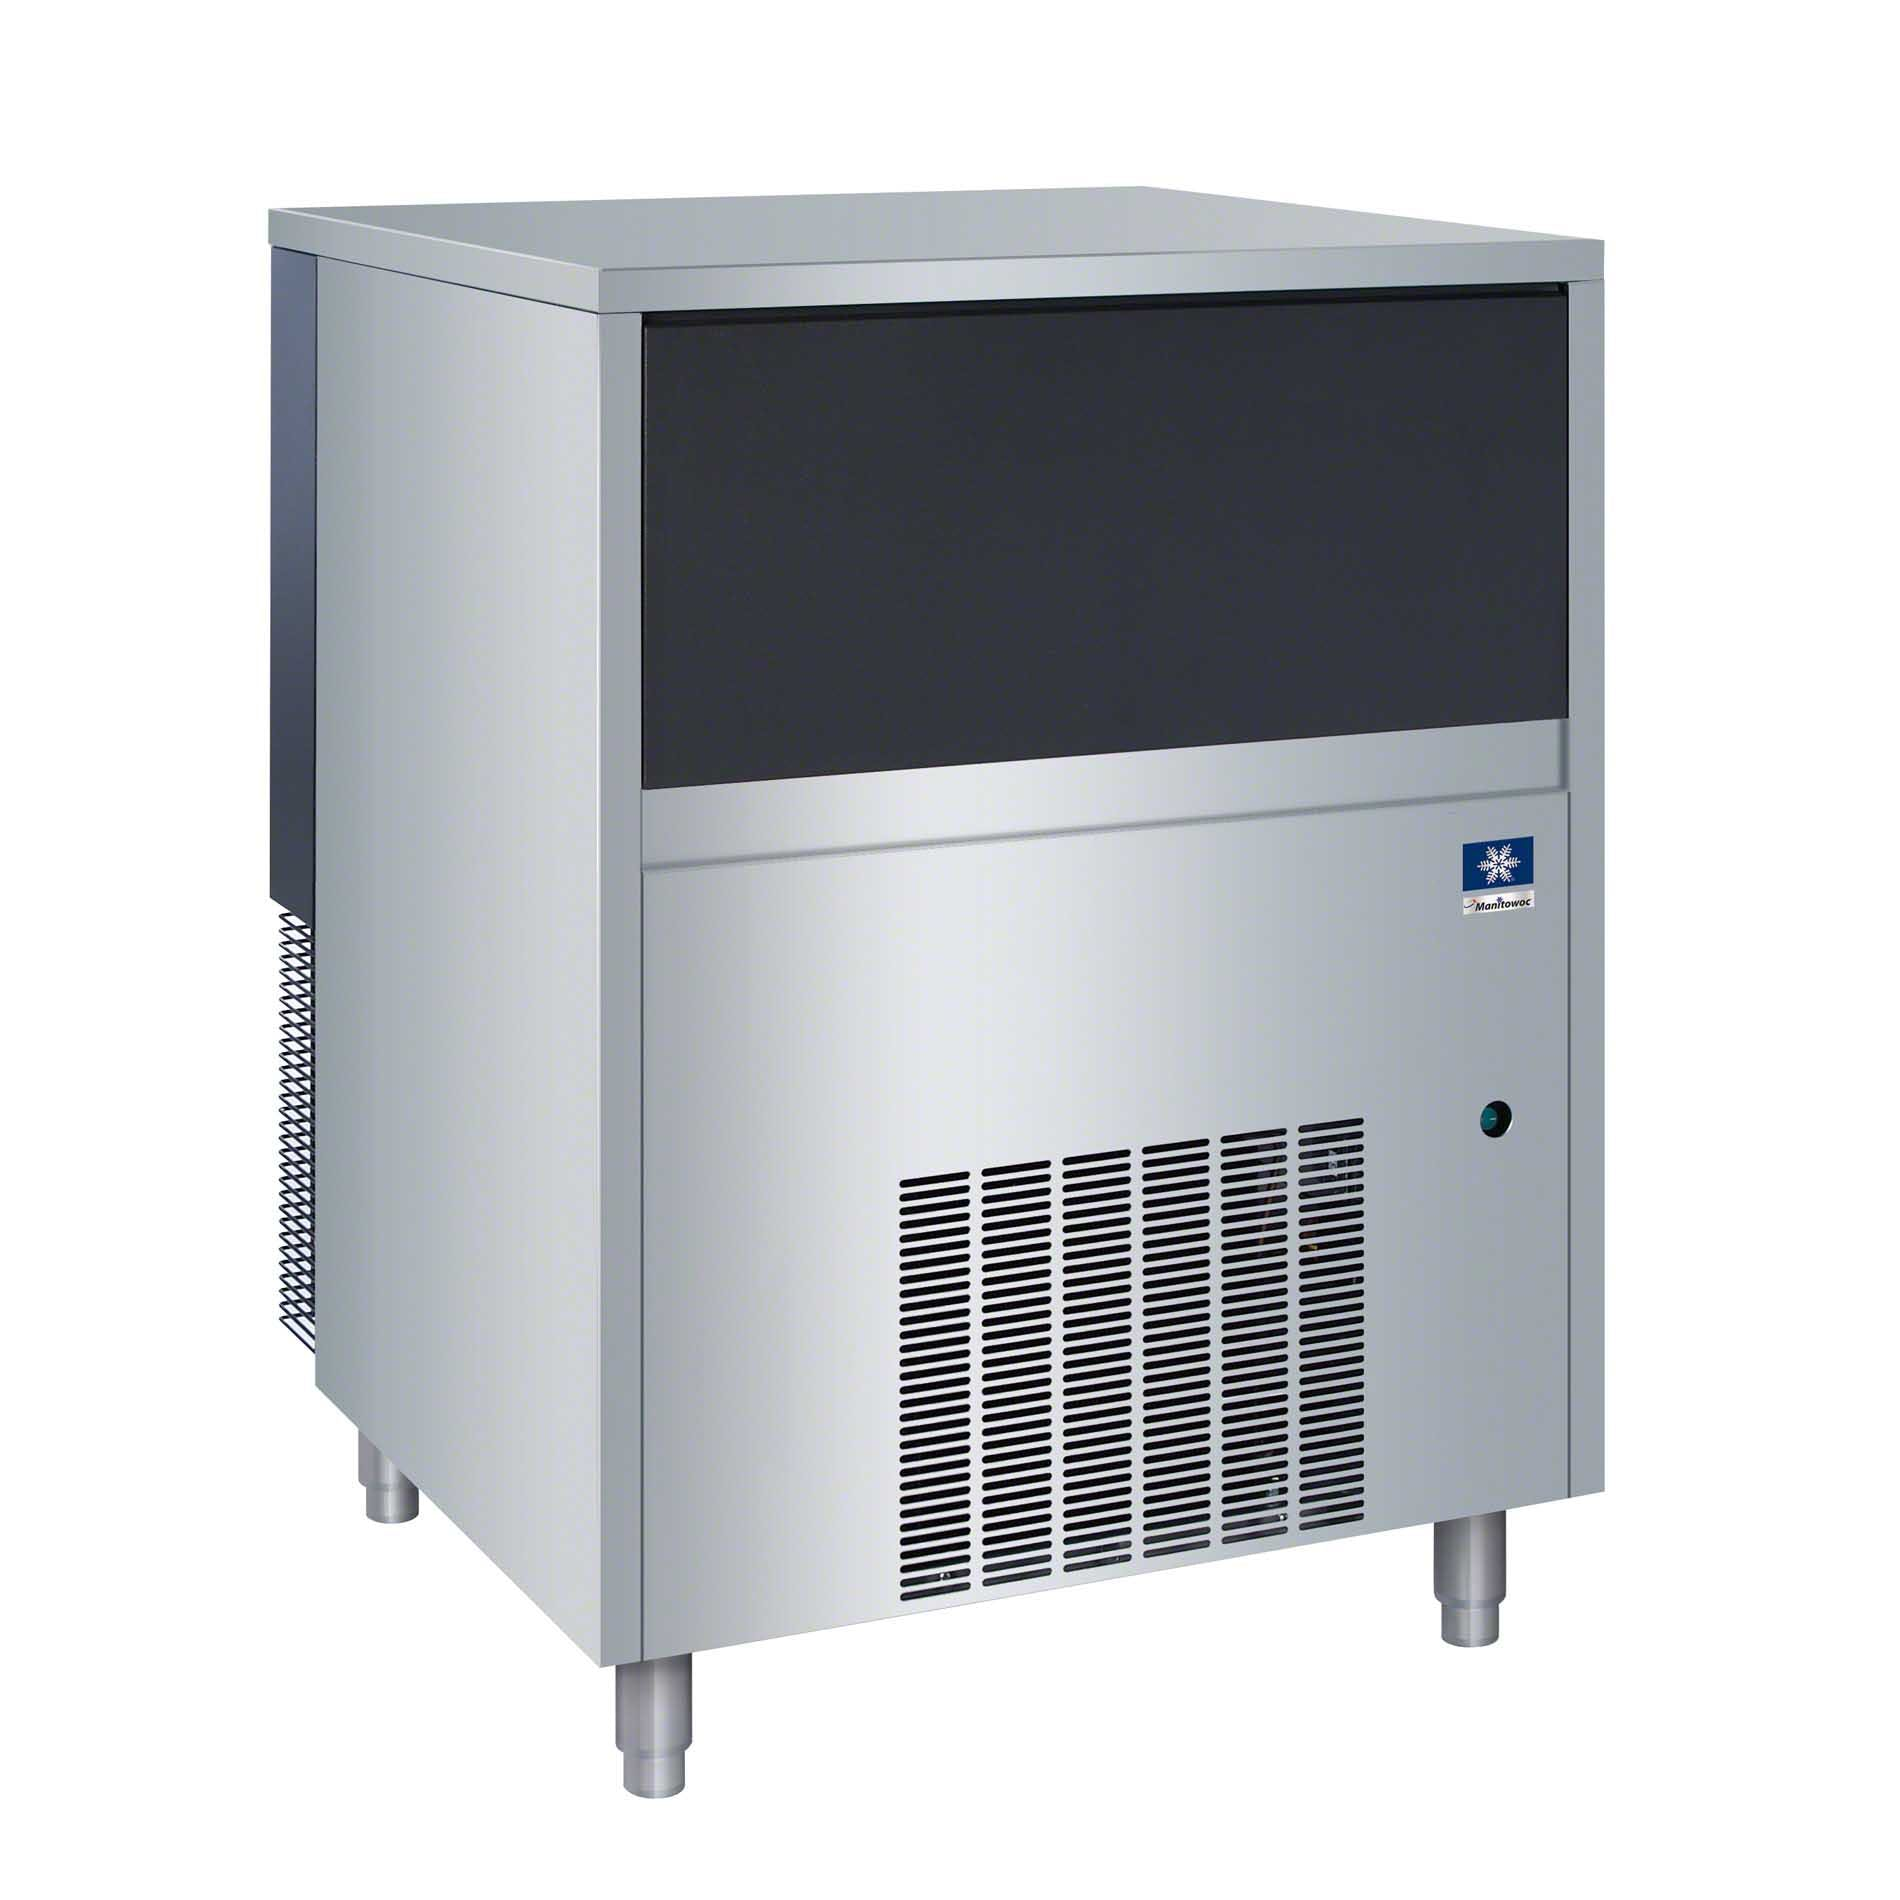 Manitowoc - RNS-0385A 300 lb Undercounter Nugget Ice Machine Ice machine sold by Food Service Warehouse